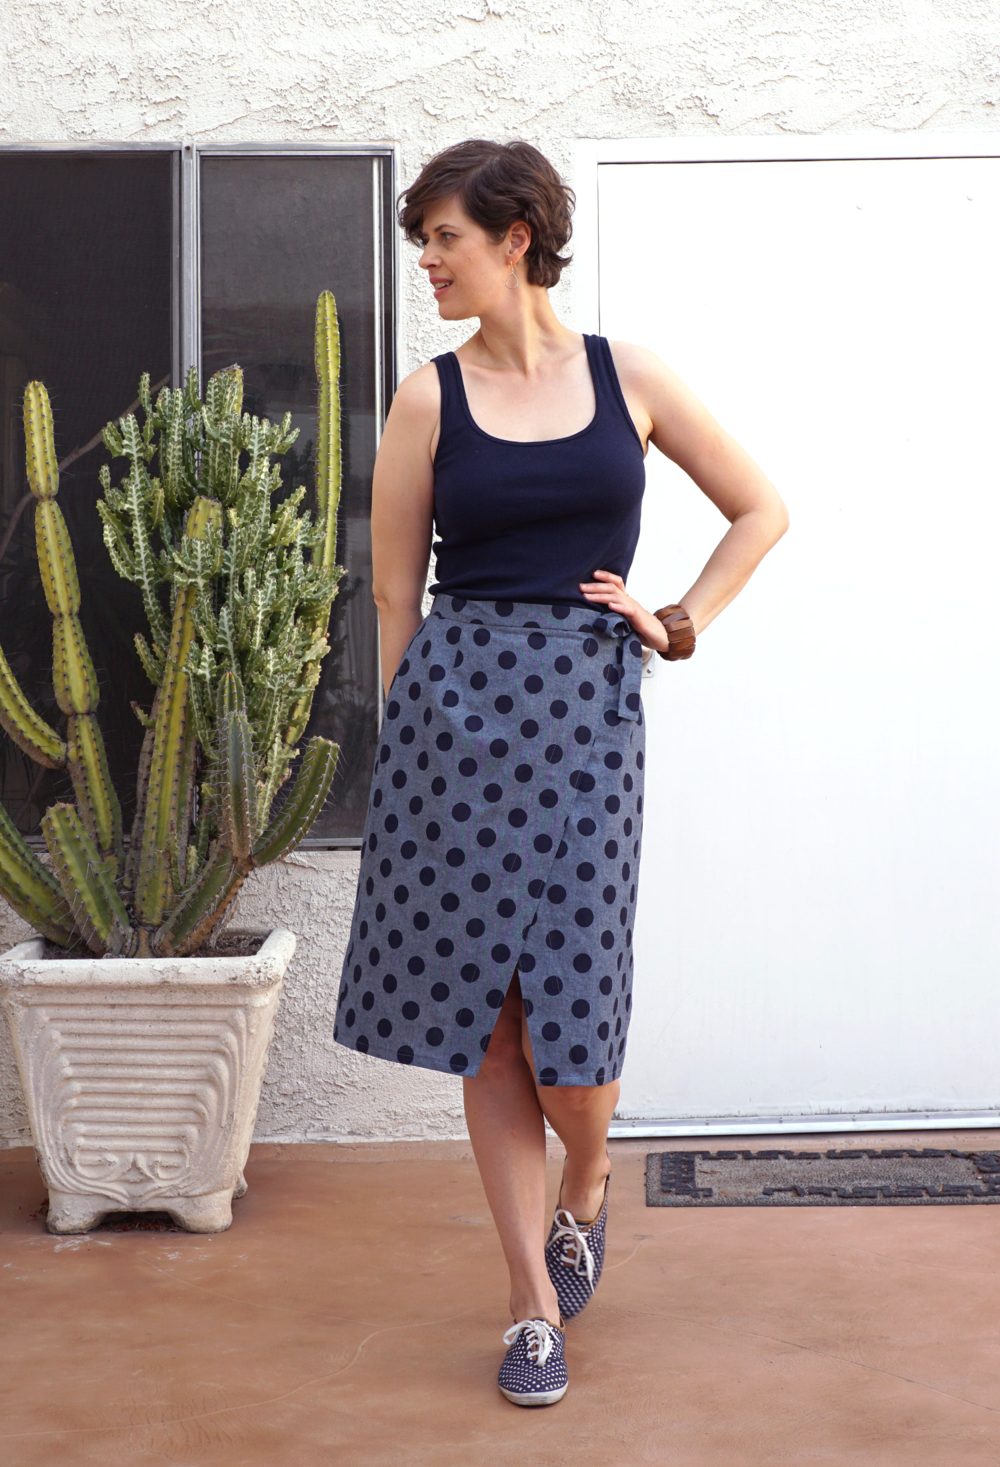 DIY Polka Dot Nita Wrap Skirt | Sew DIY